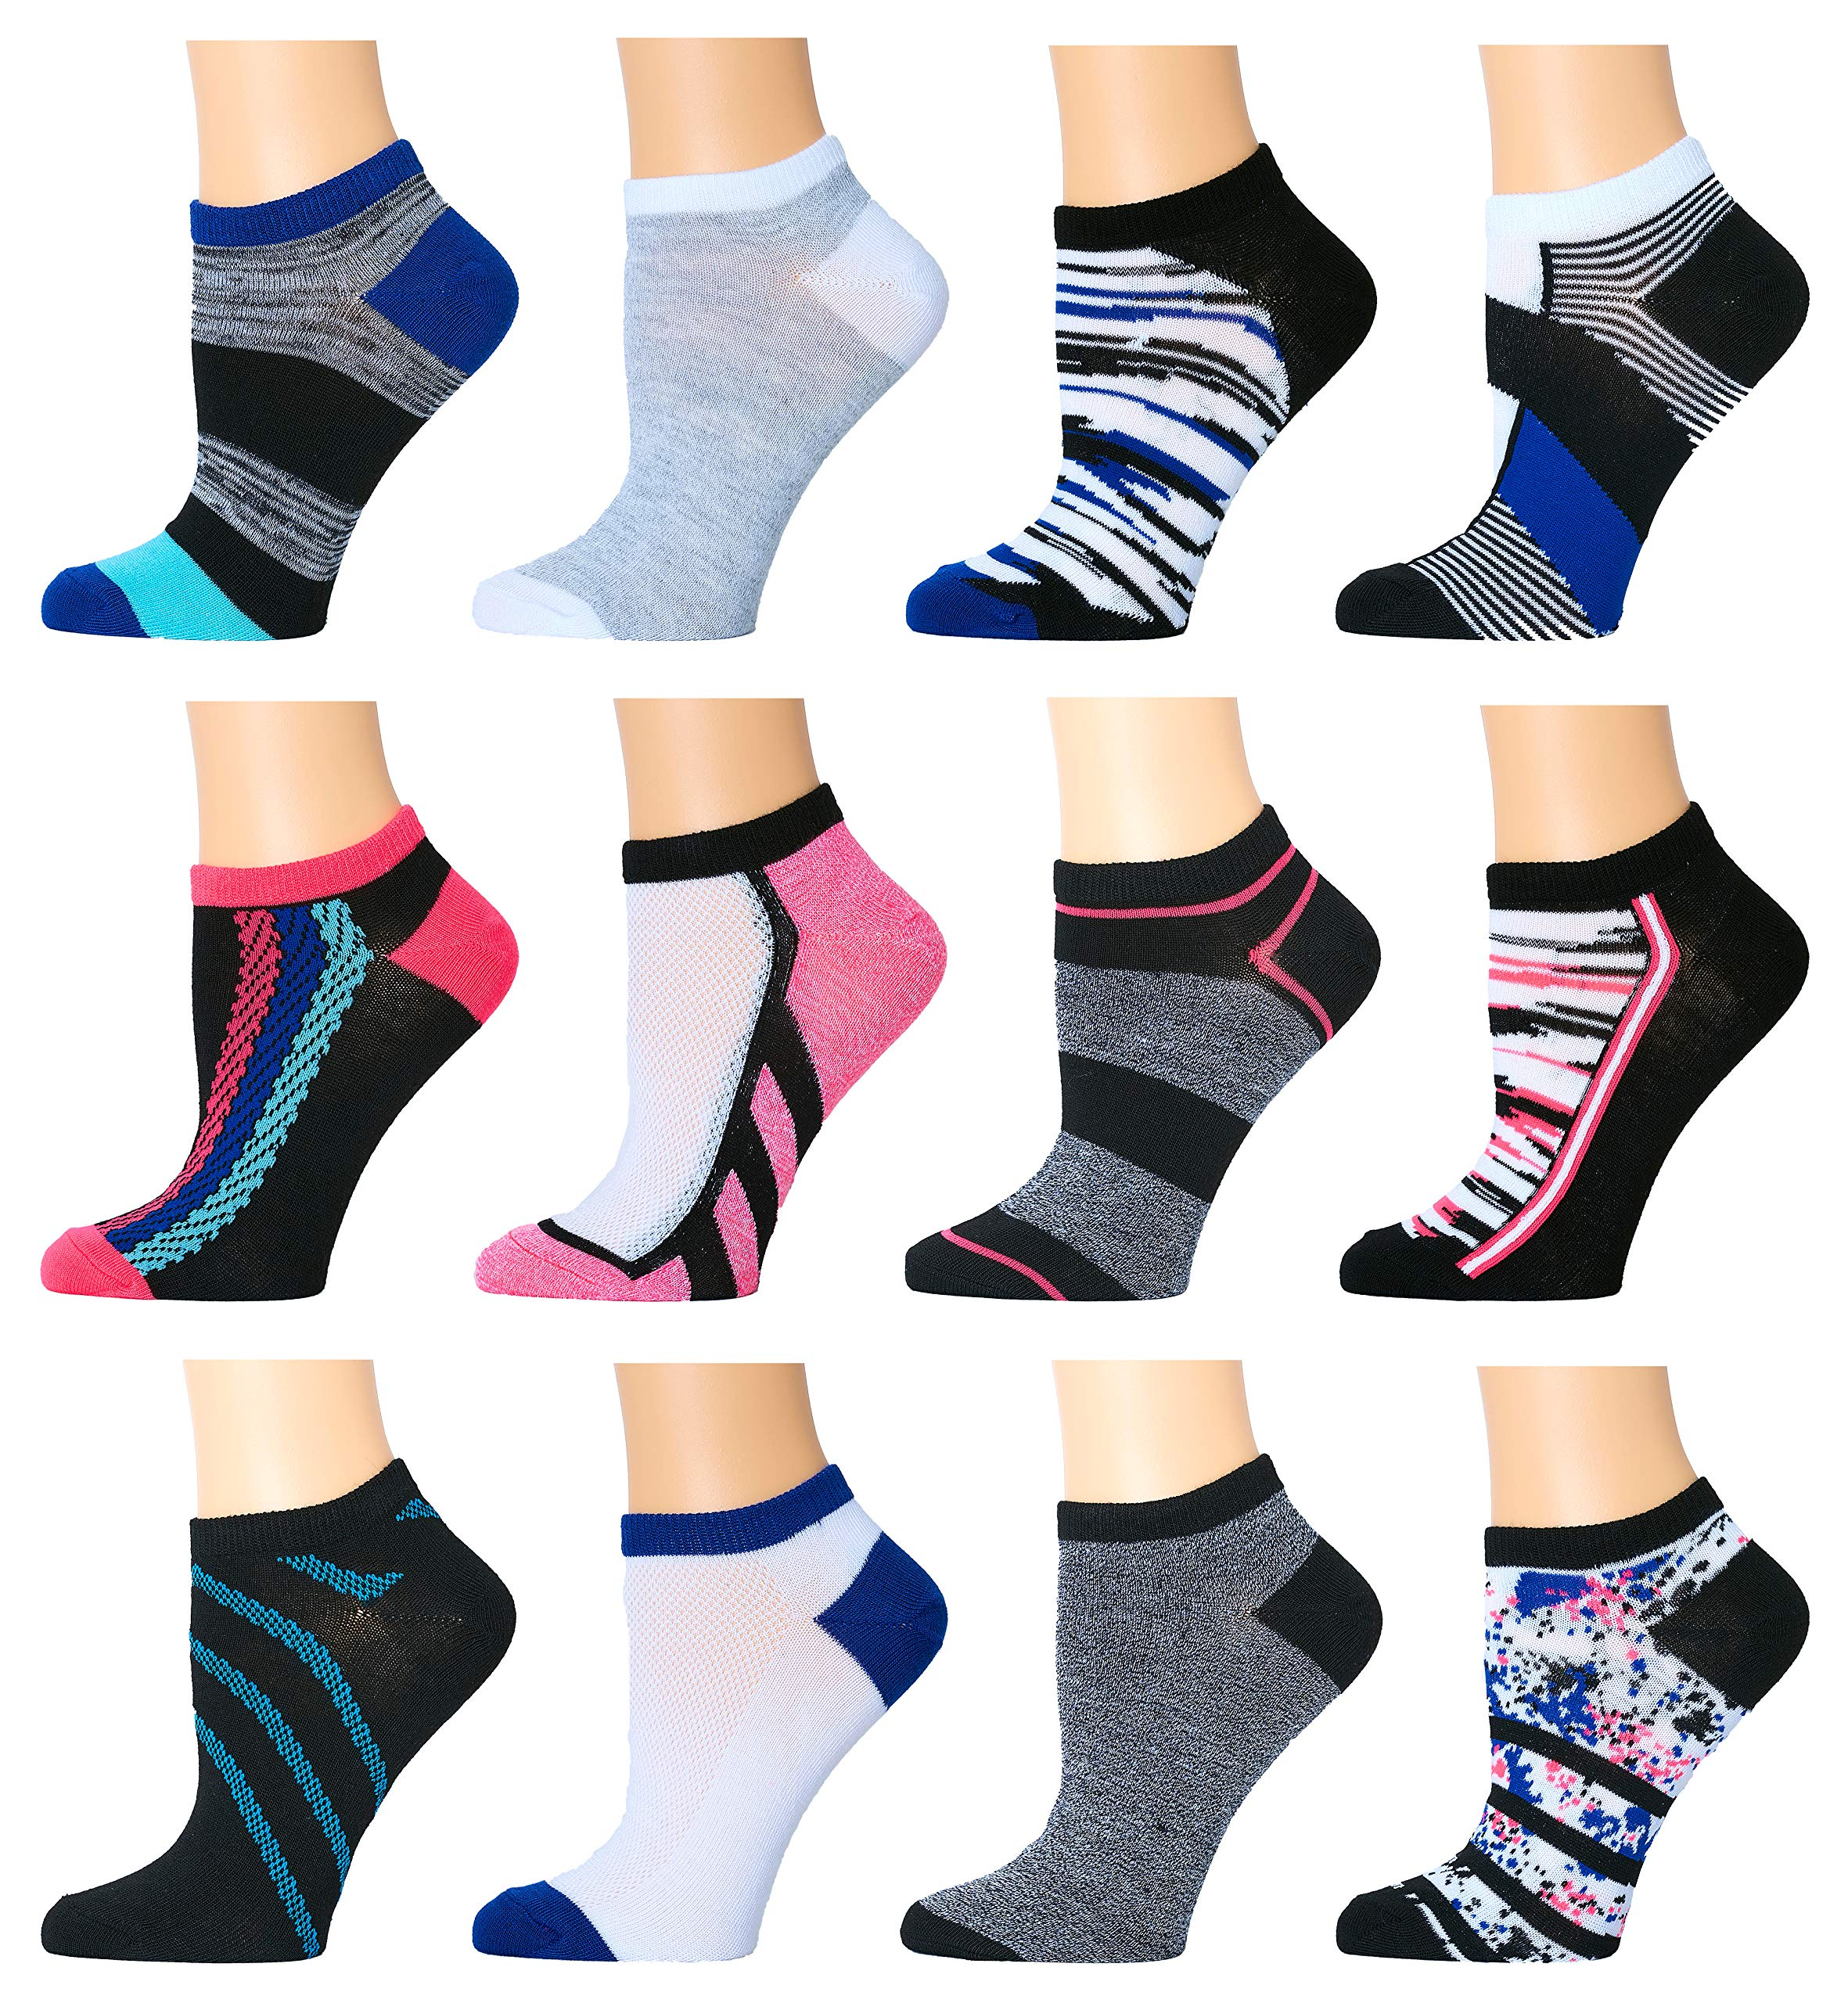 Top Step Women's No Show Athletic Socks - 12 Pack